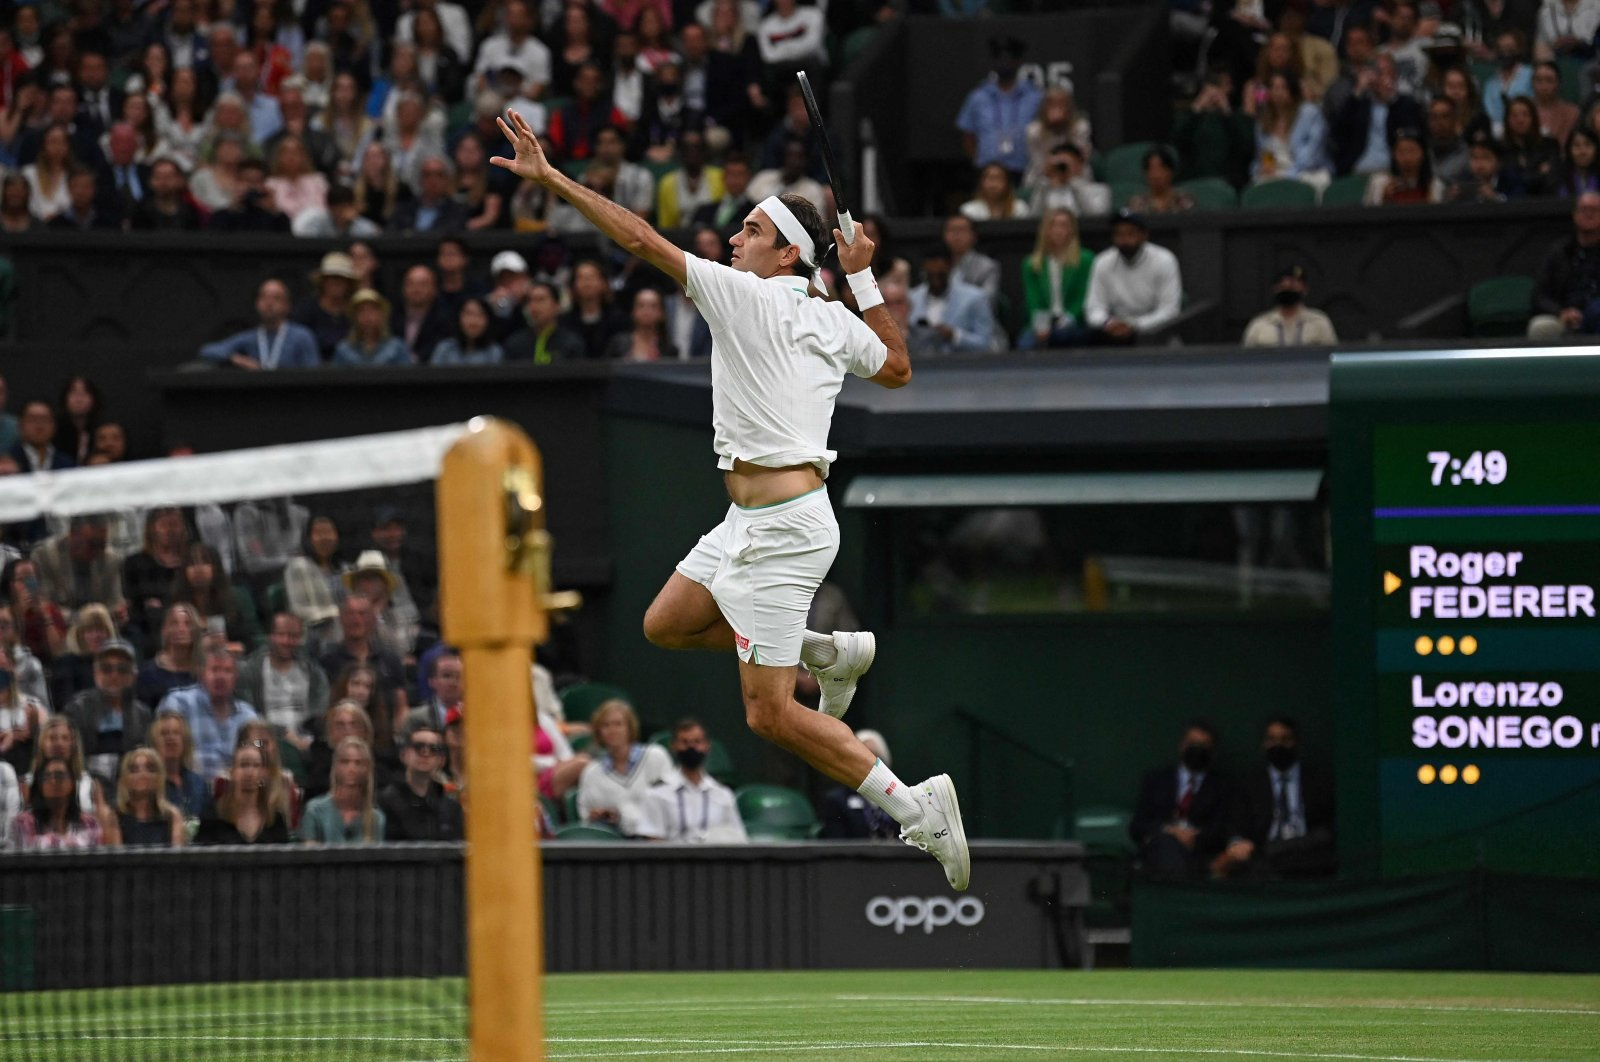 Switzerland's Roger Federer jumps to play a return against Italy's Lorenzo Sonego during their Wimbledon fourth-round men's singles match, London, England, July 5, 2021. (AFP Photo)